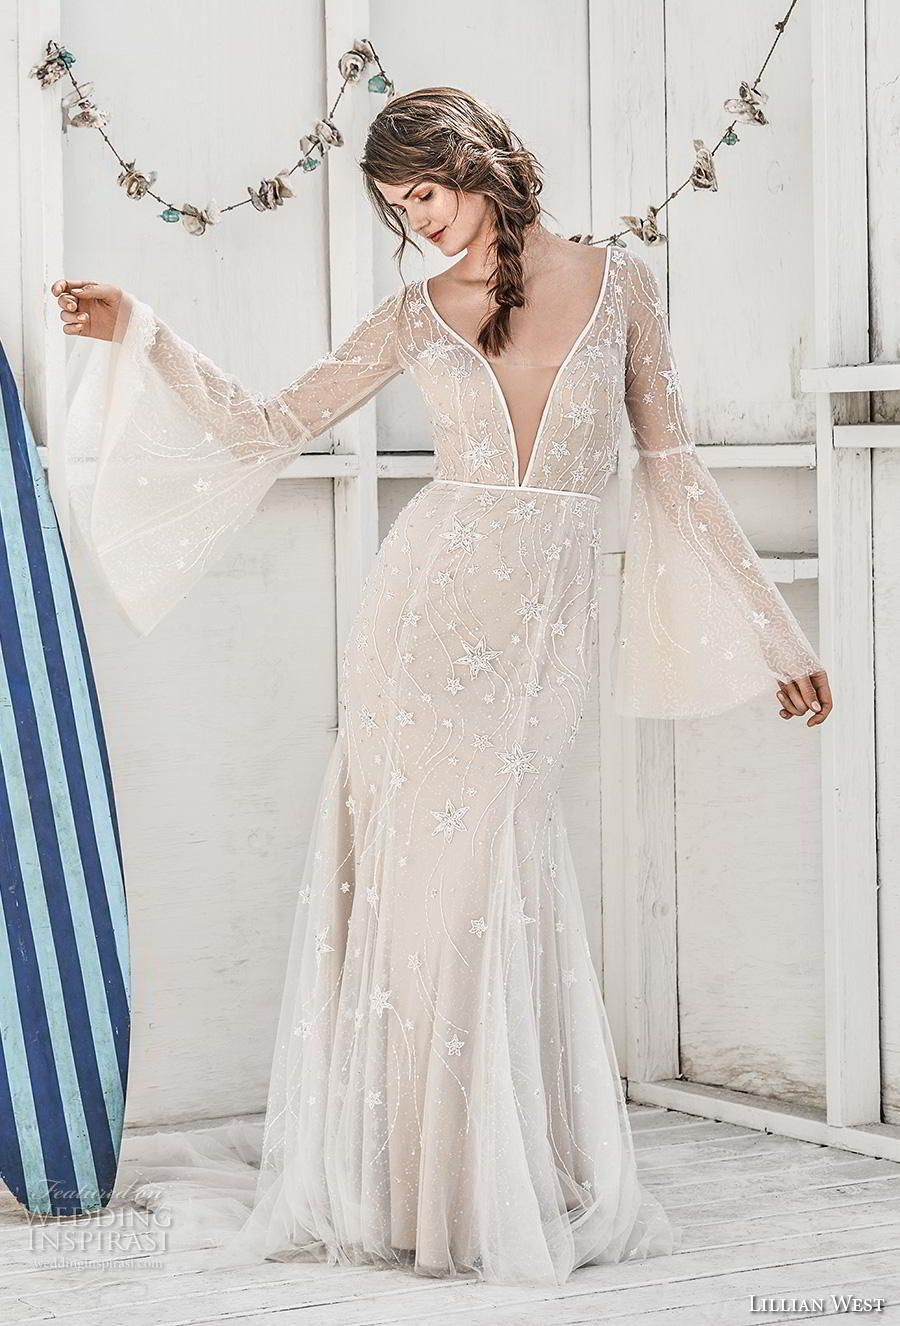 V neck white lace dress may 2019 Lillian West Spring  Wedding Dresses  Wedding   Pinterest